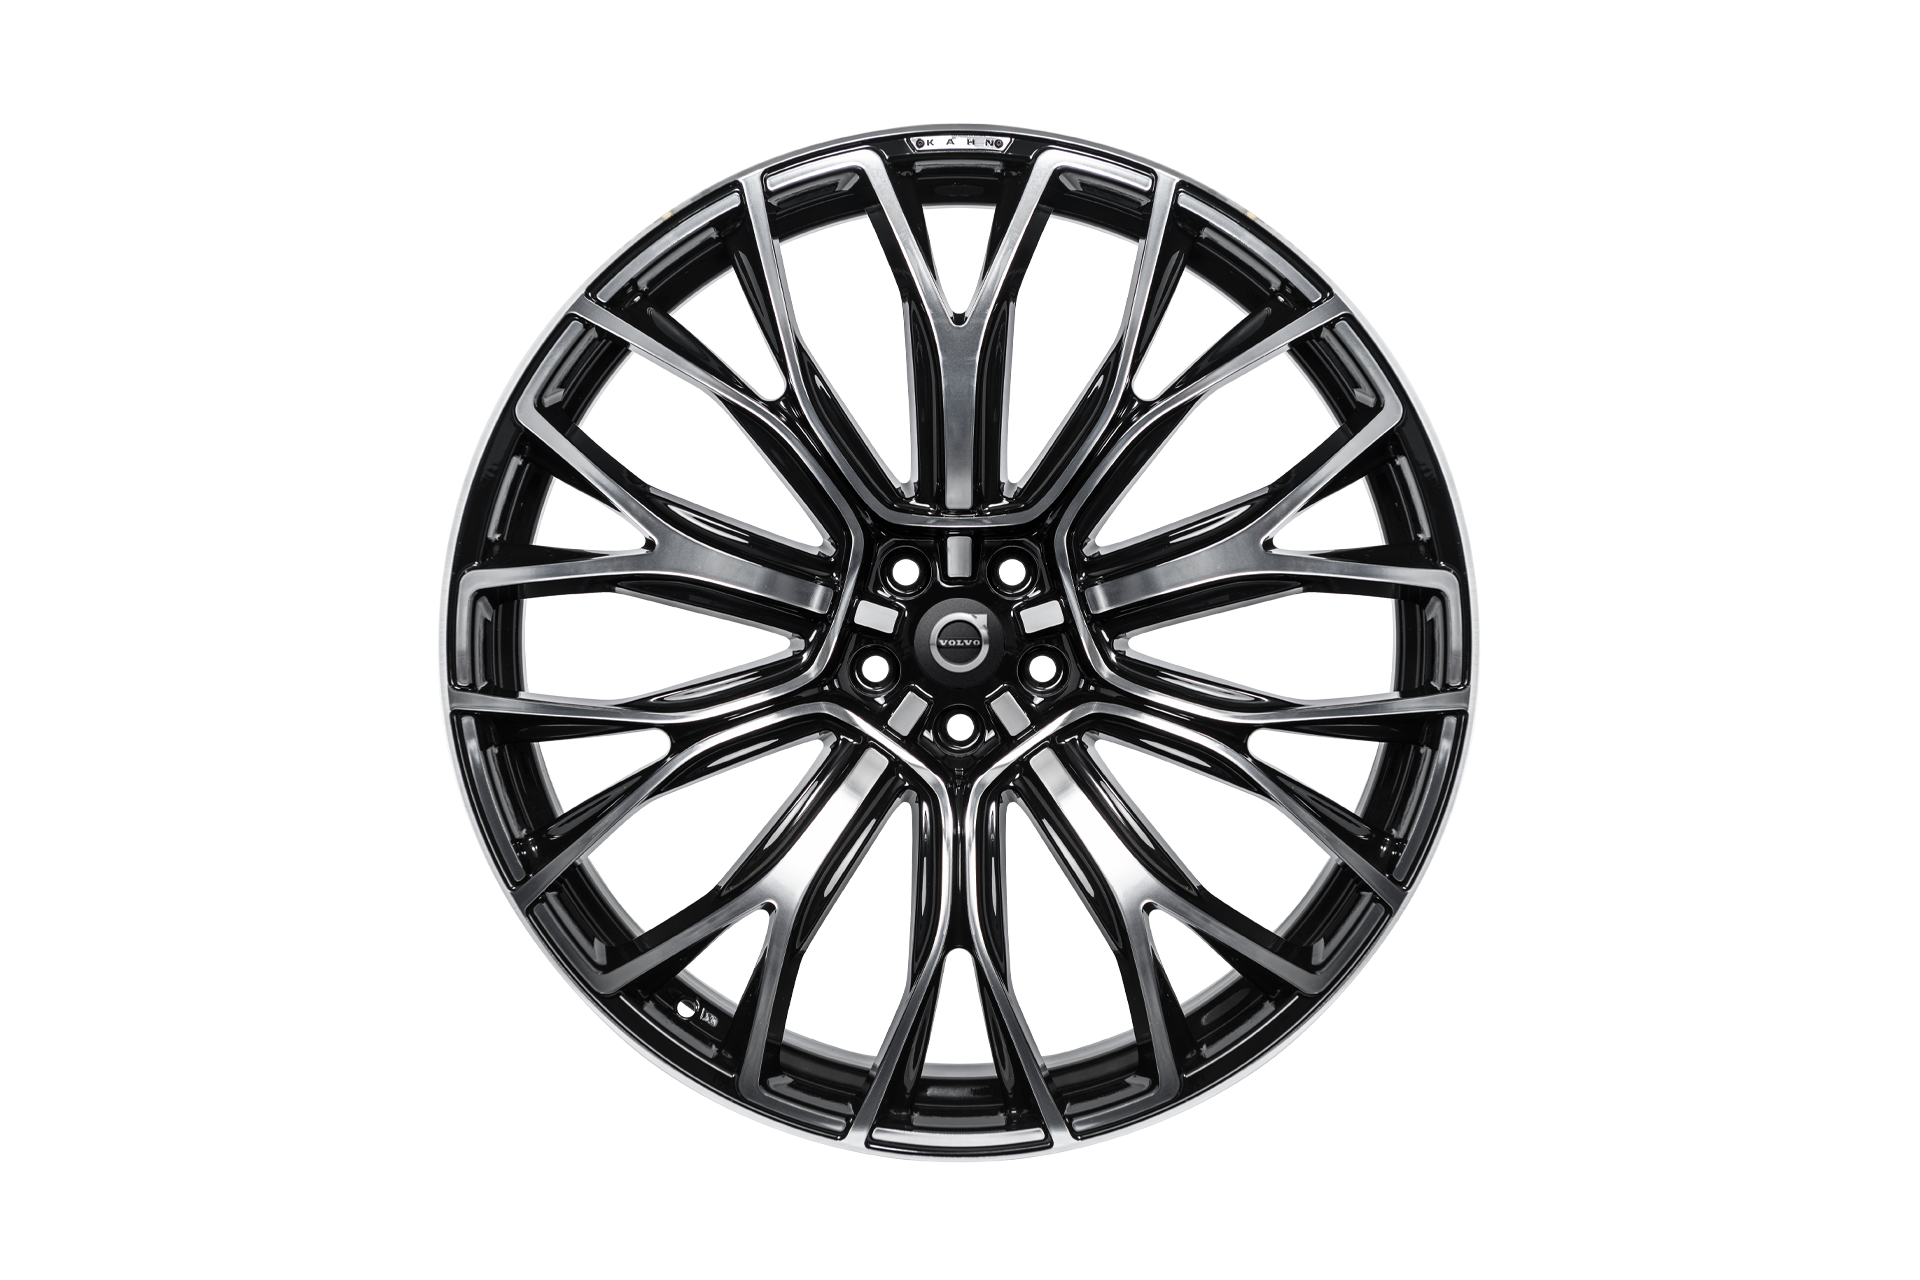 Volvo Xc90 (2017-Present) Type 25 Rs-Forged Alloy Wheels Image 4348